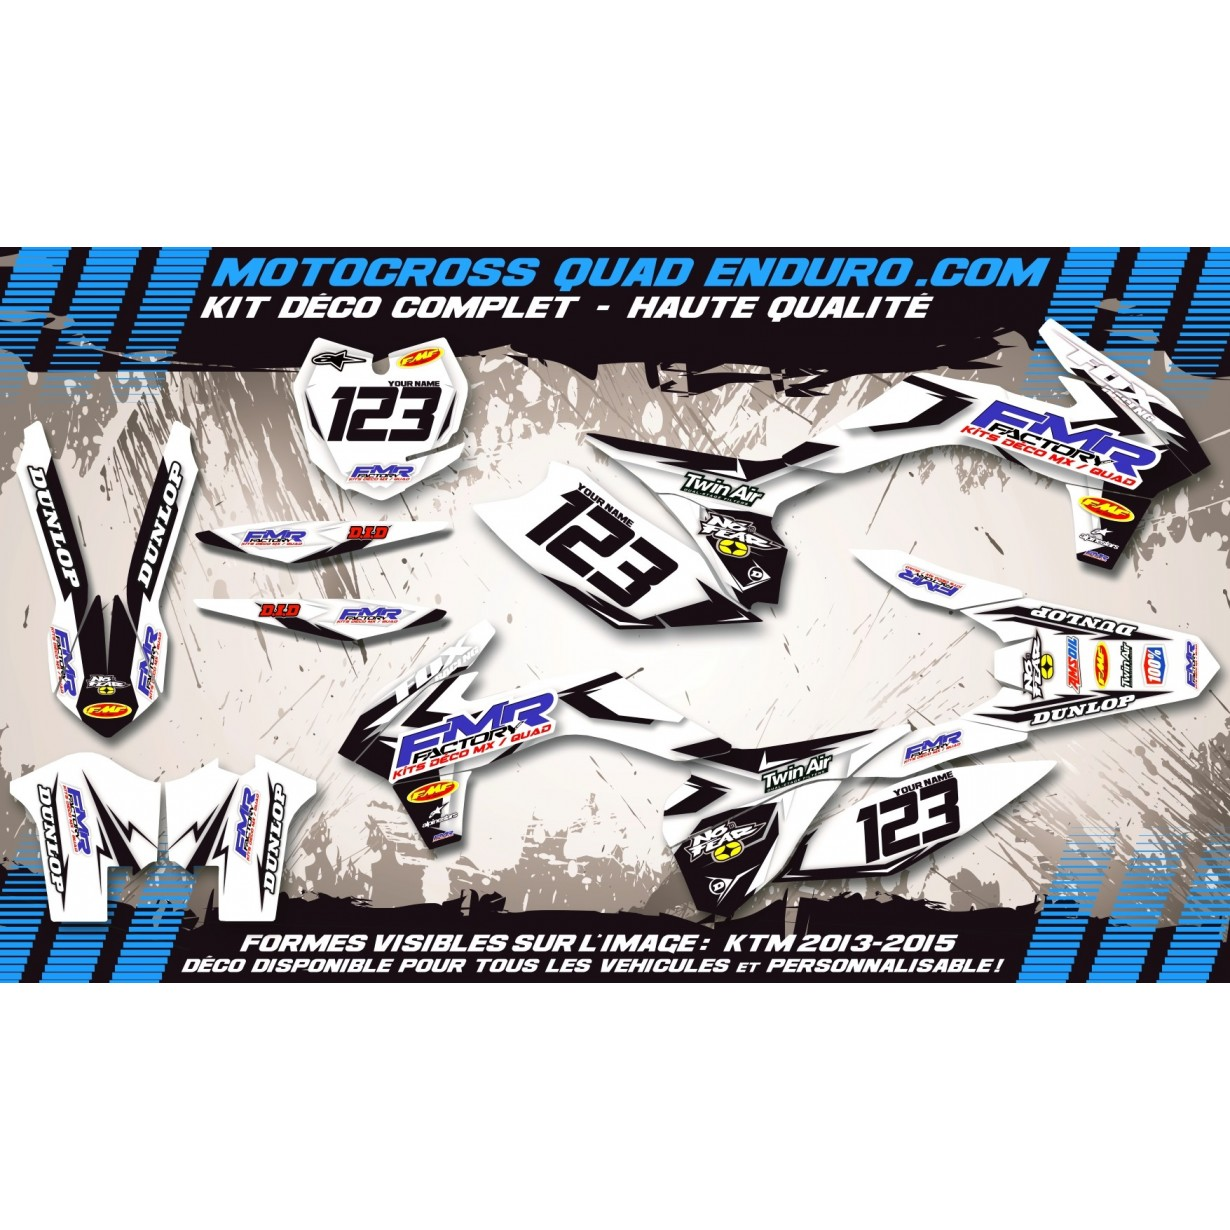 KIT DÉCO Perso 700 RAPTOR 13-18 Quad Fmr factory WT Edition MA13WT